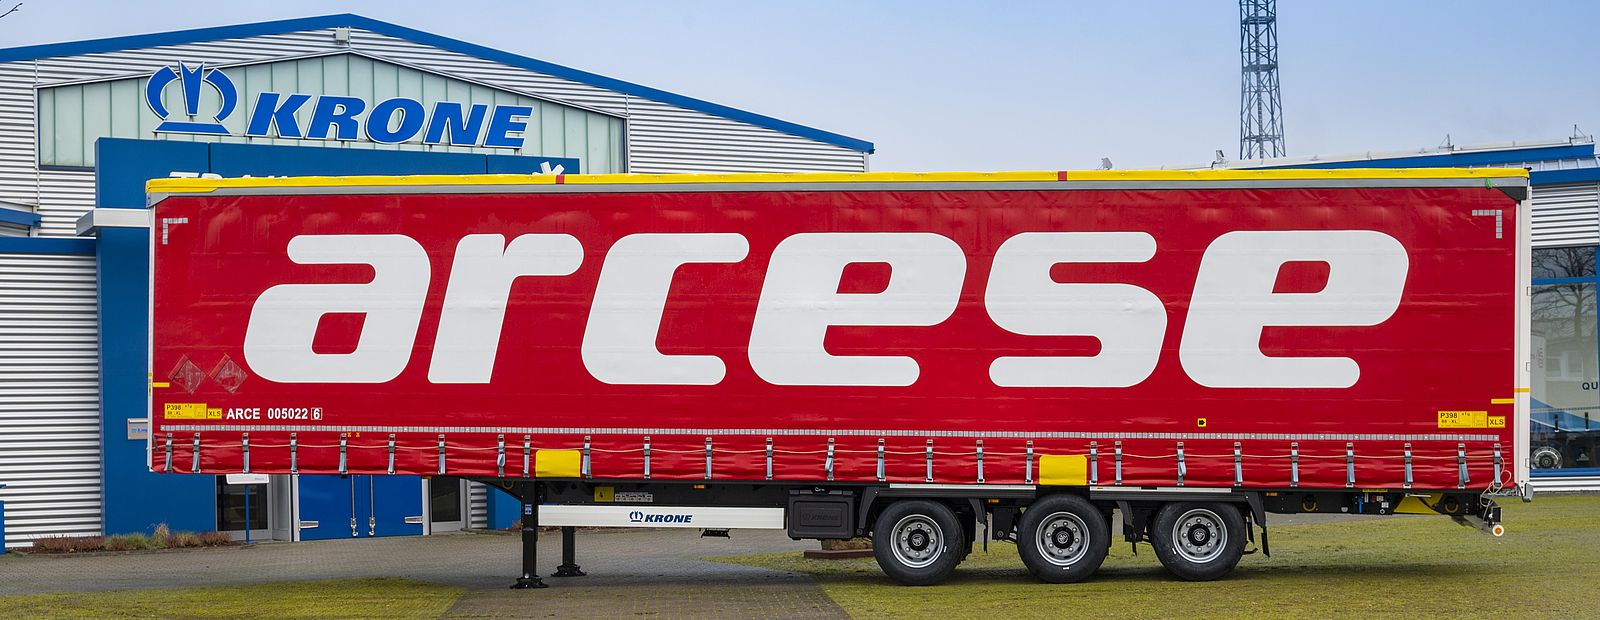 Arcese innovates by investing in sustainable logistics